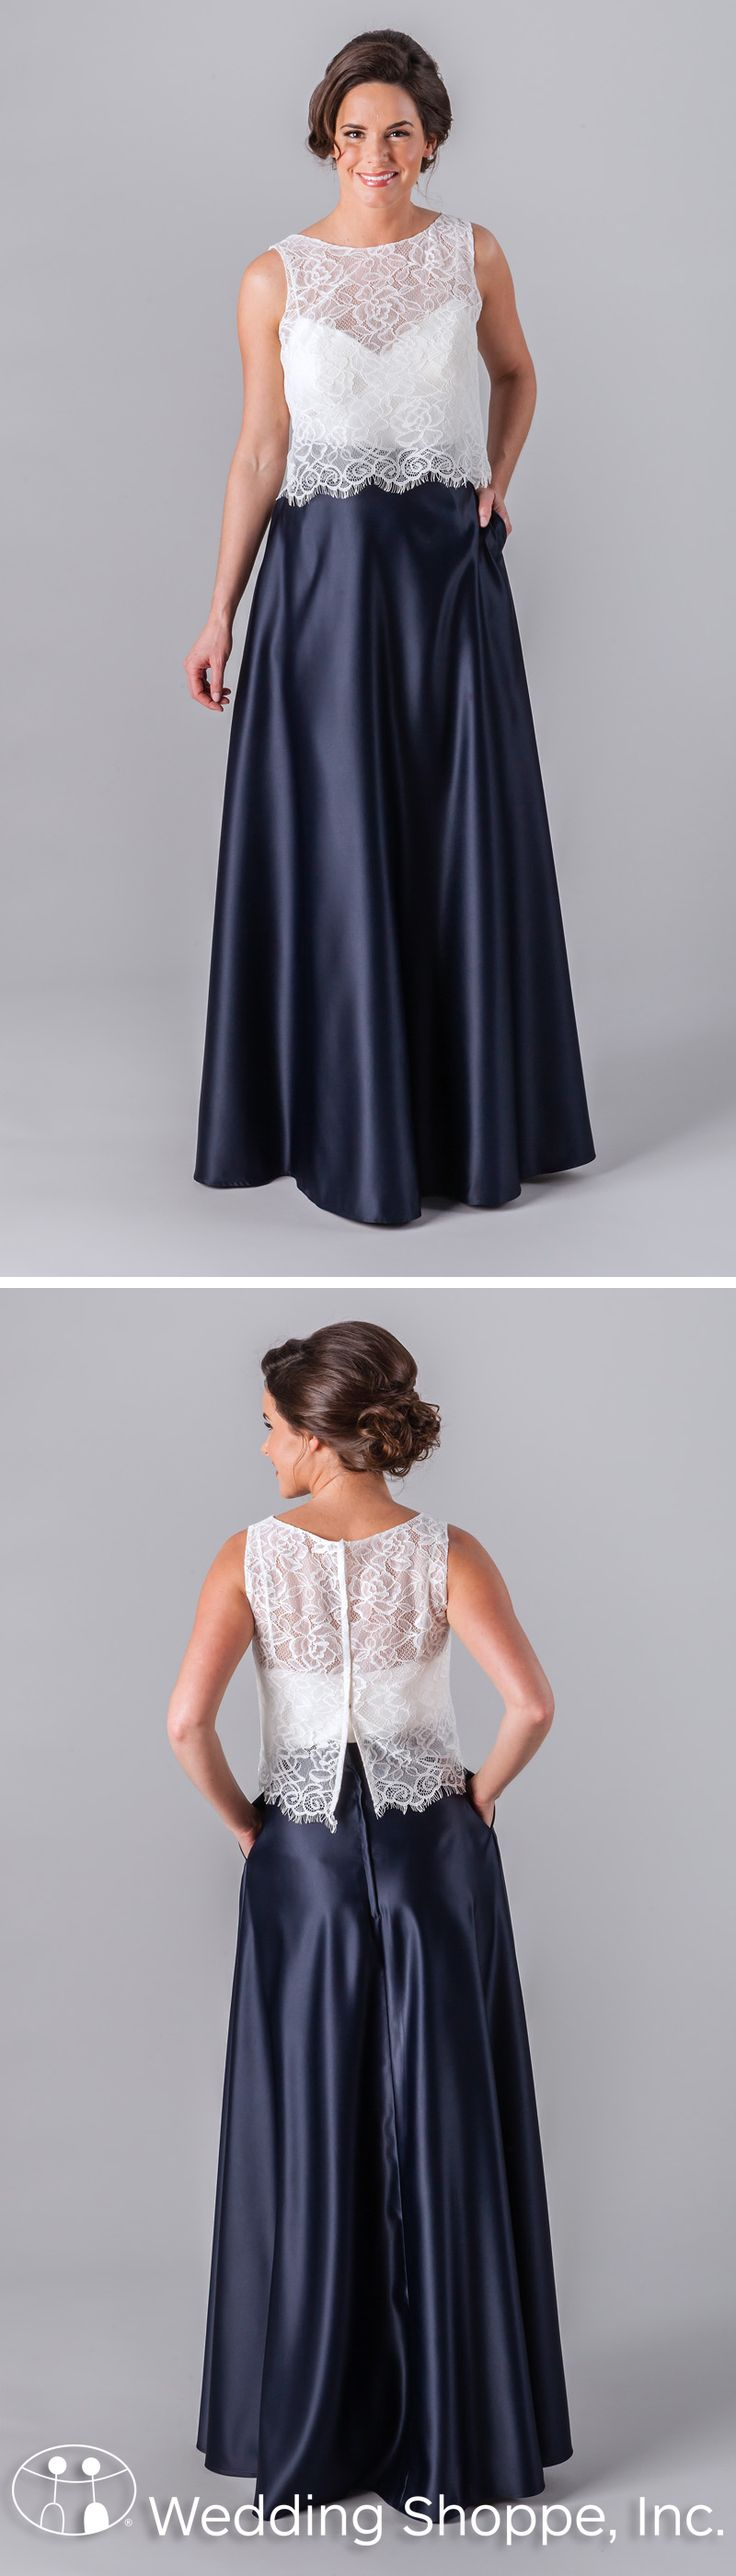 27 best two piece bridesmaid dresses wedding shoppe images on a two piece bridesmaid dress from kennedy blue featuring a lace illusion neckline top and ombrellifo Image collections